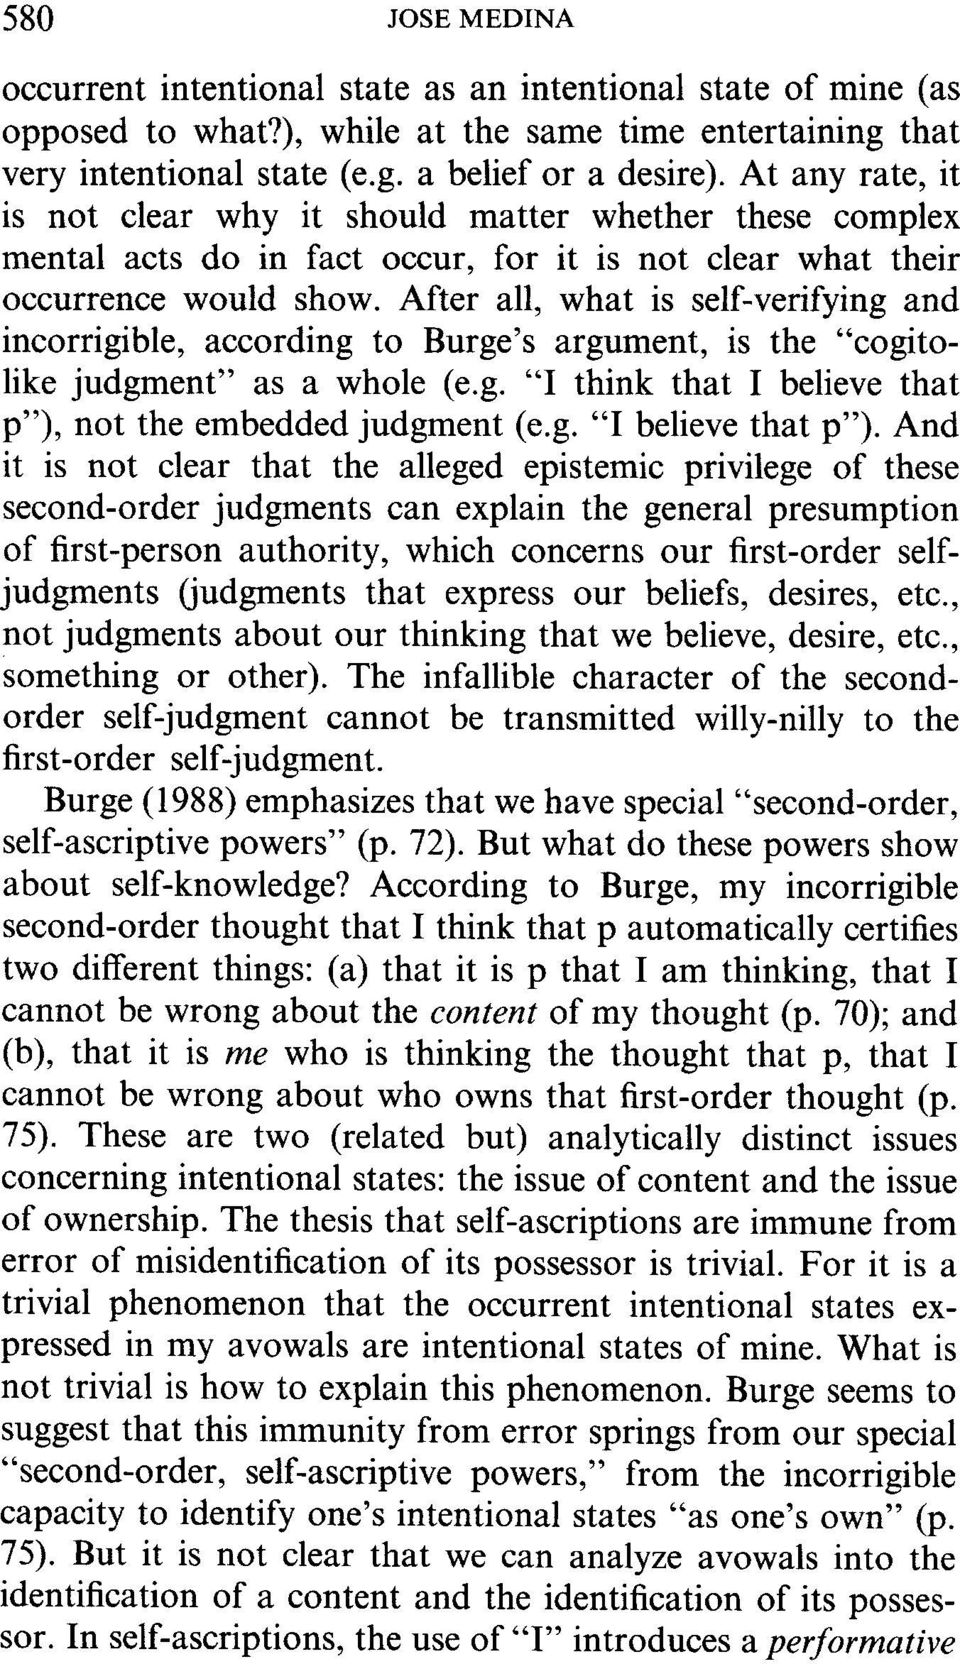 "After all, what is self-verifying and incorrigible, according to Burge's argument, is the ""cogitolike judgment"" as a whole (e.g. ""I think that I believe that p""), not the embedded judgment (e.g. ""I believe that p"")."